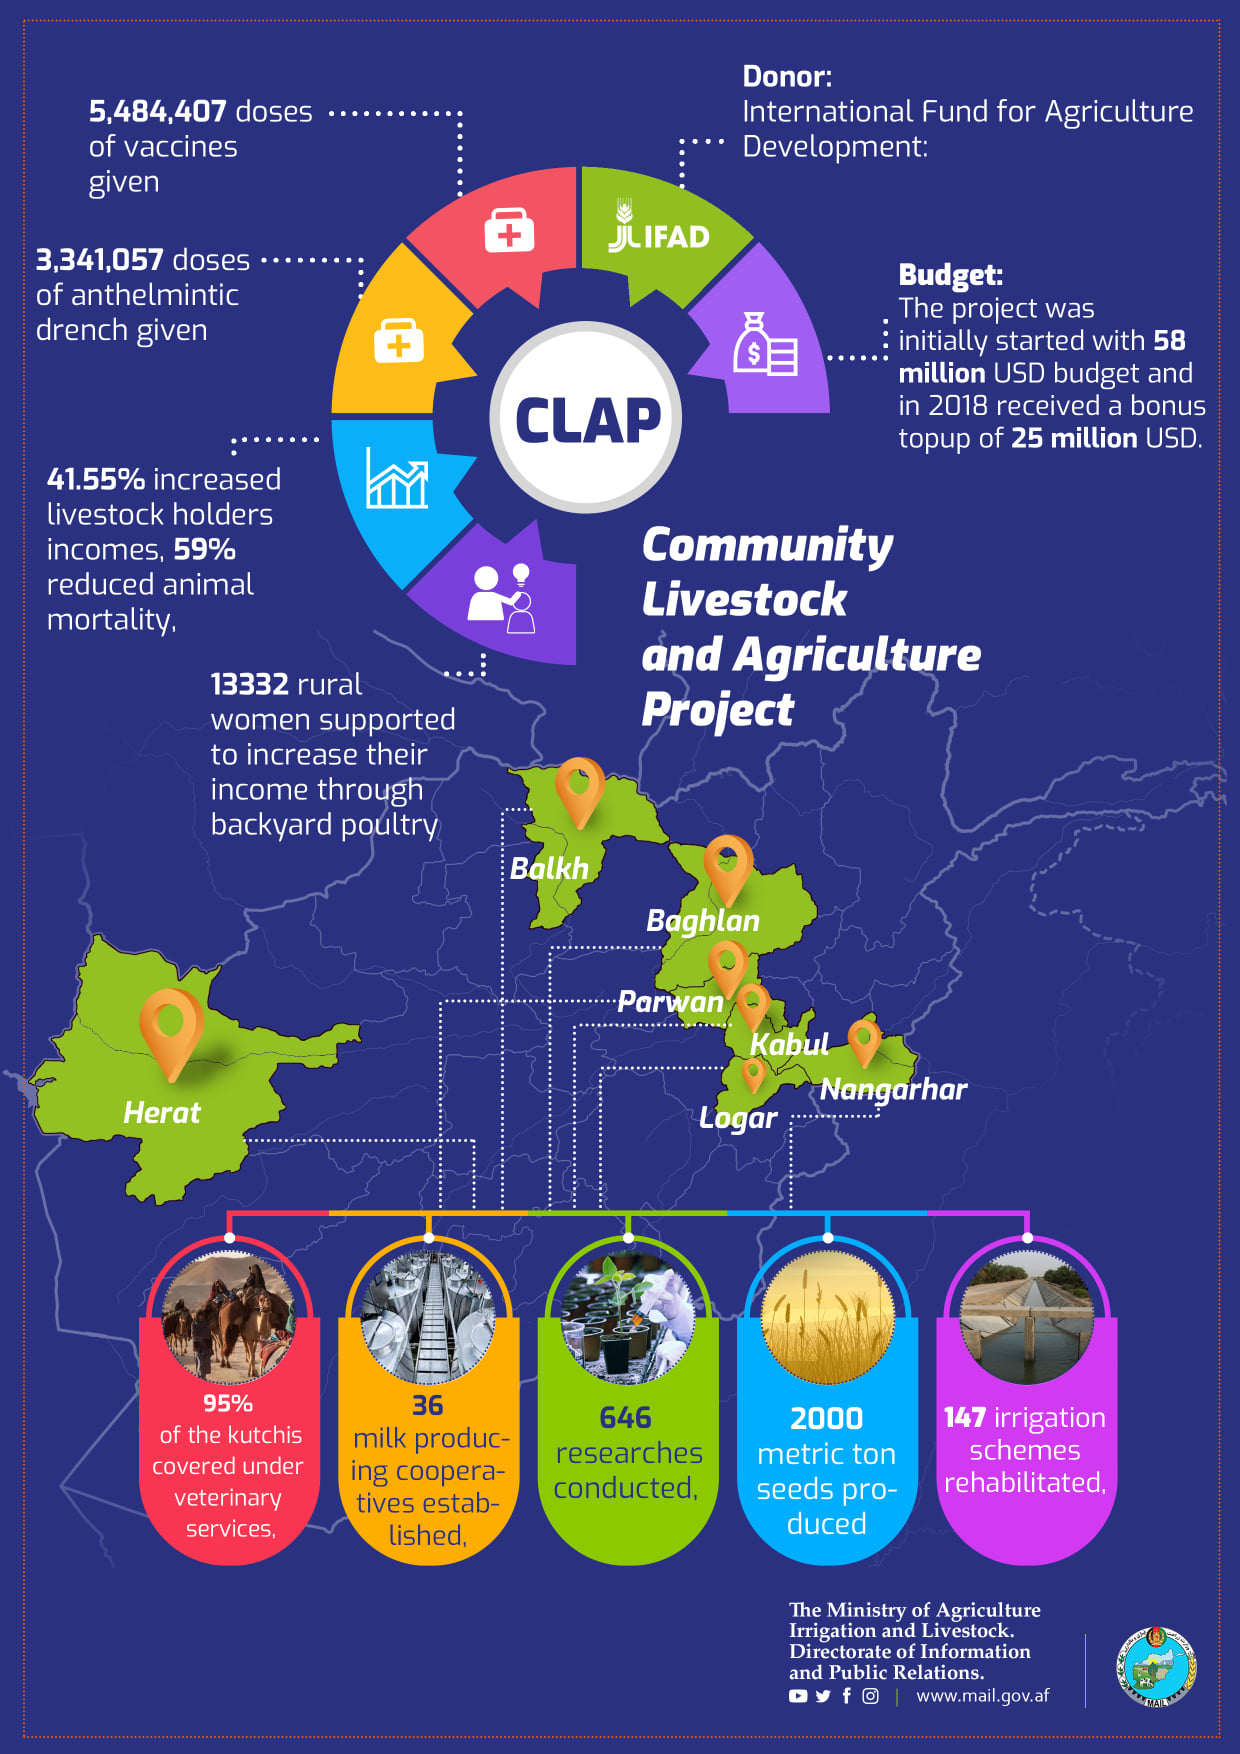 Community Livestock and Agriculture Project (CLAP)